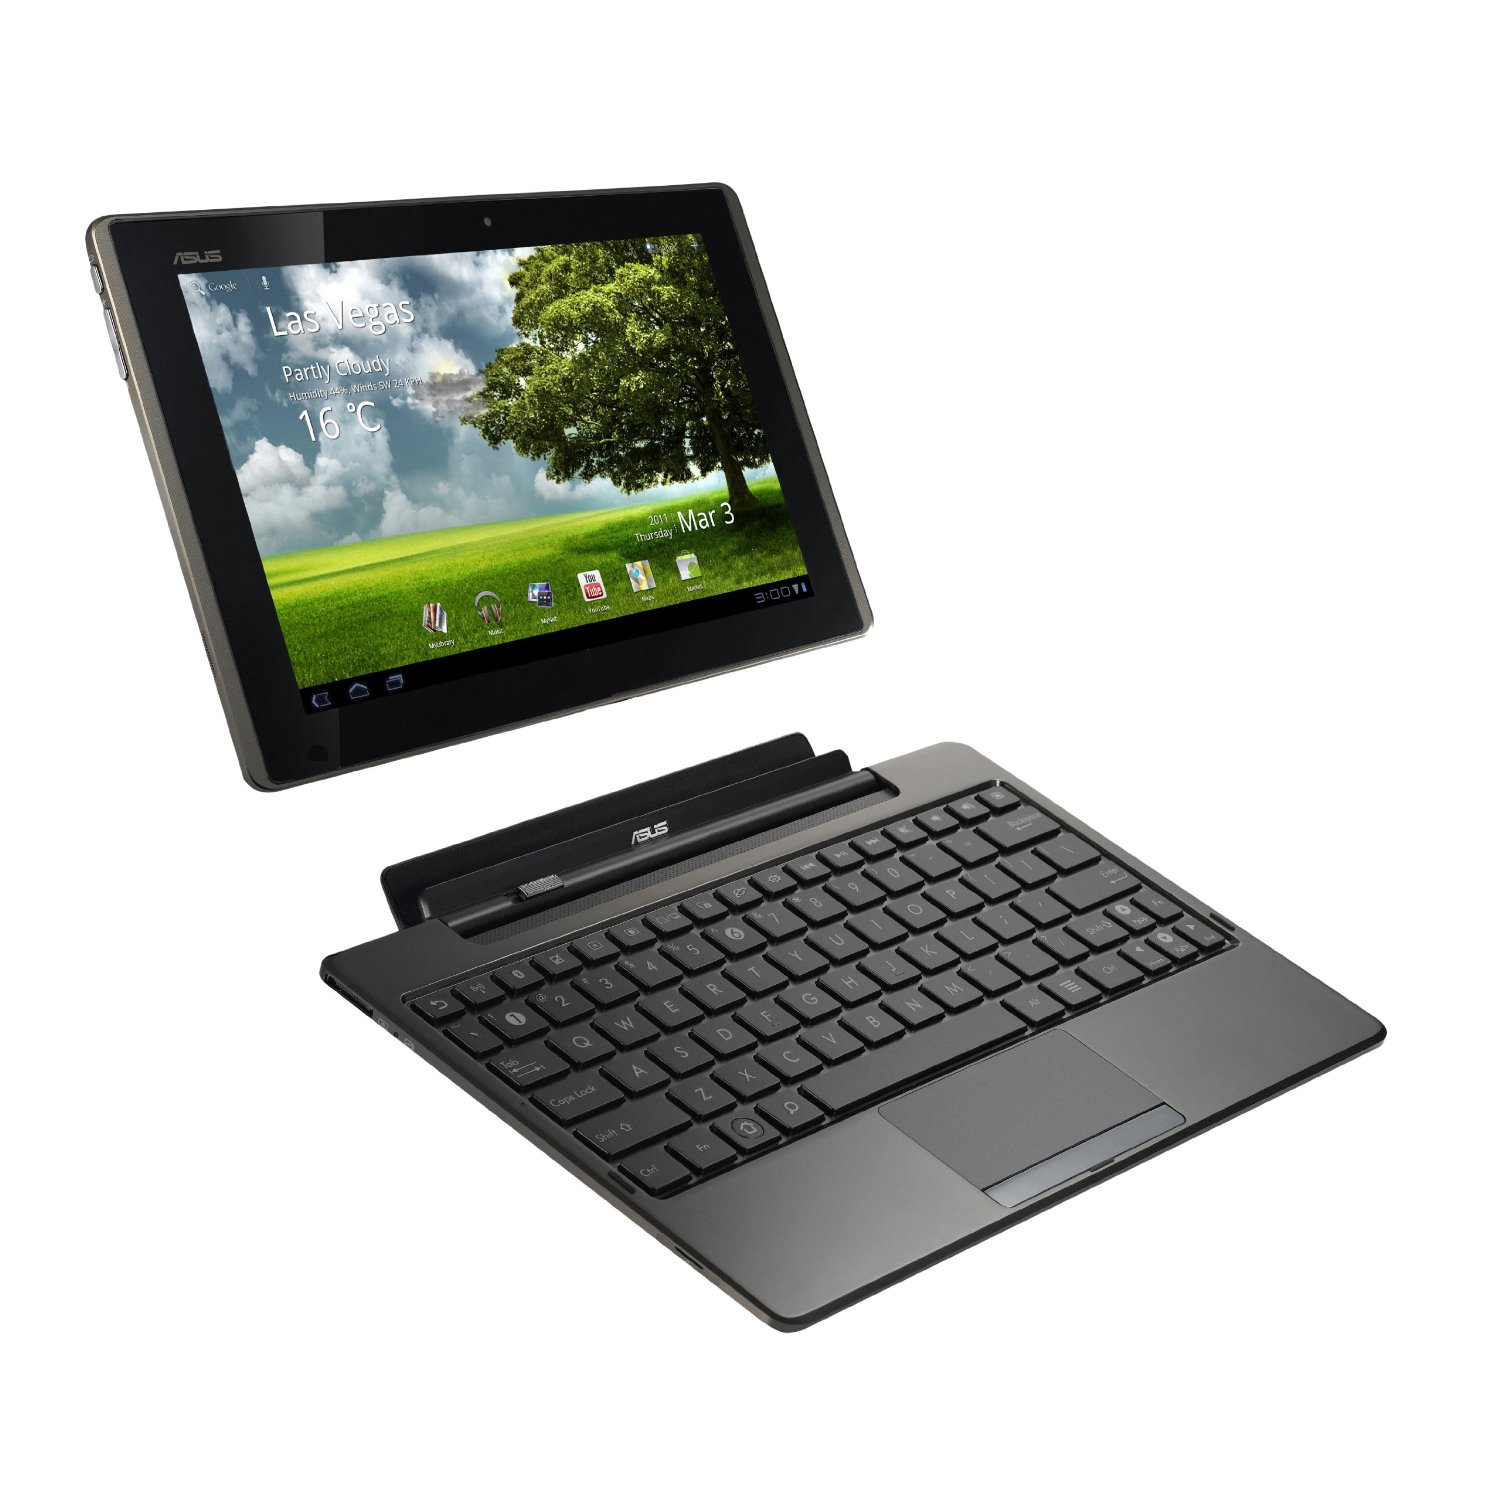 New Android 3.0 Tablet PC Asus Eee Pad UK Release Date ...